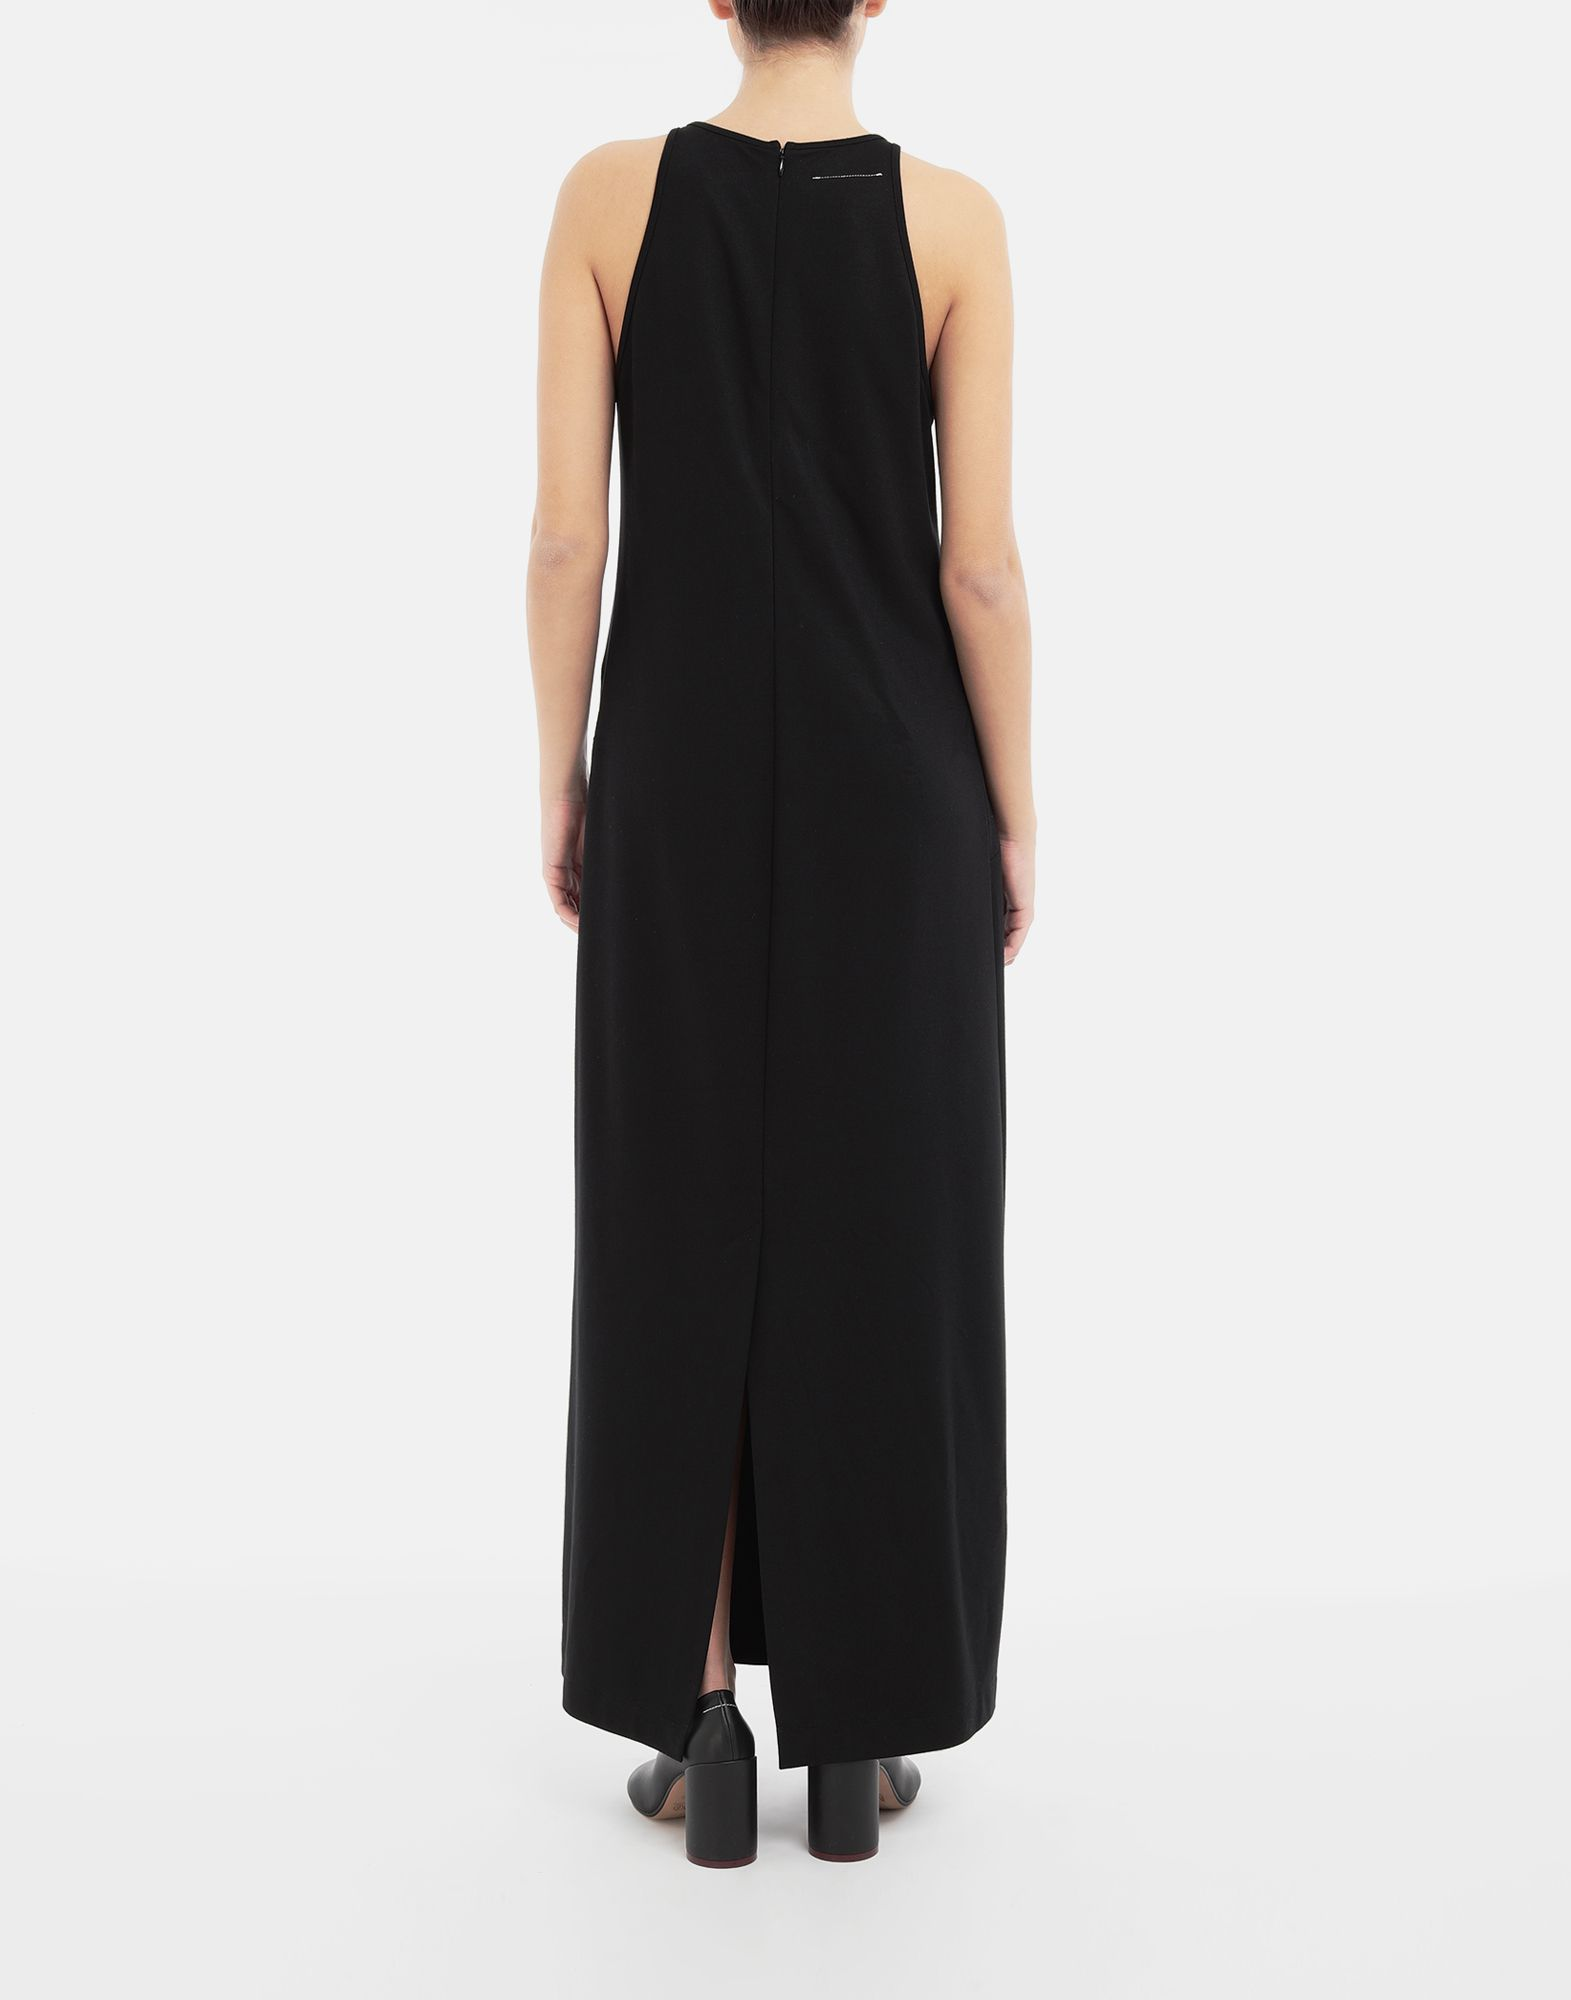 MM6 MAISON MARGIELA Two-part dress Dress Woman e